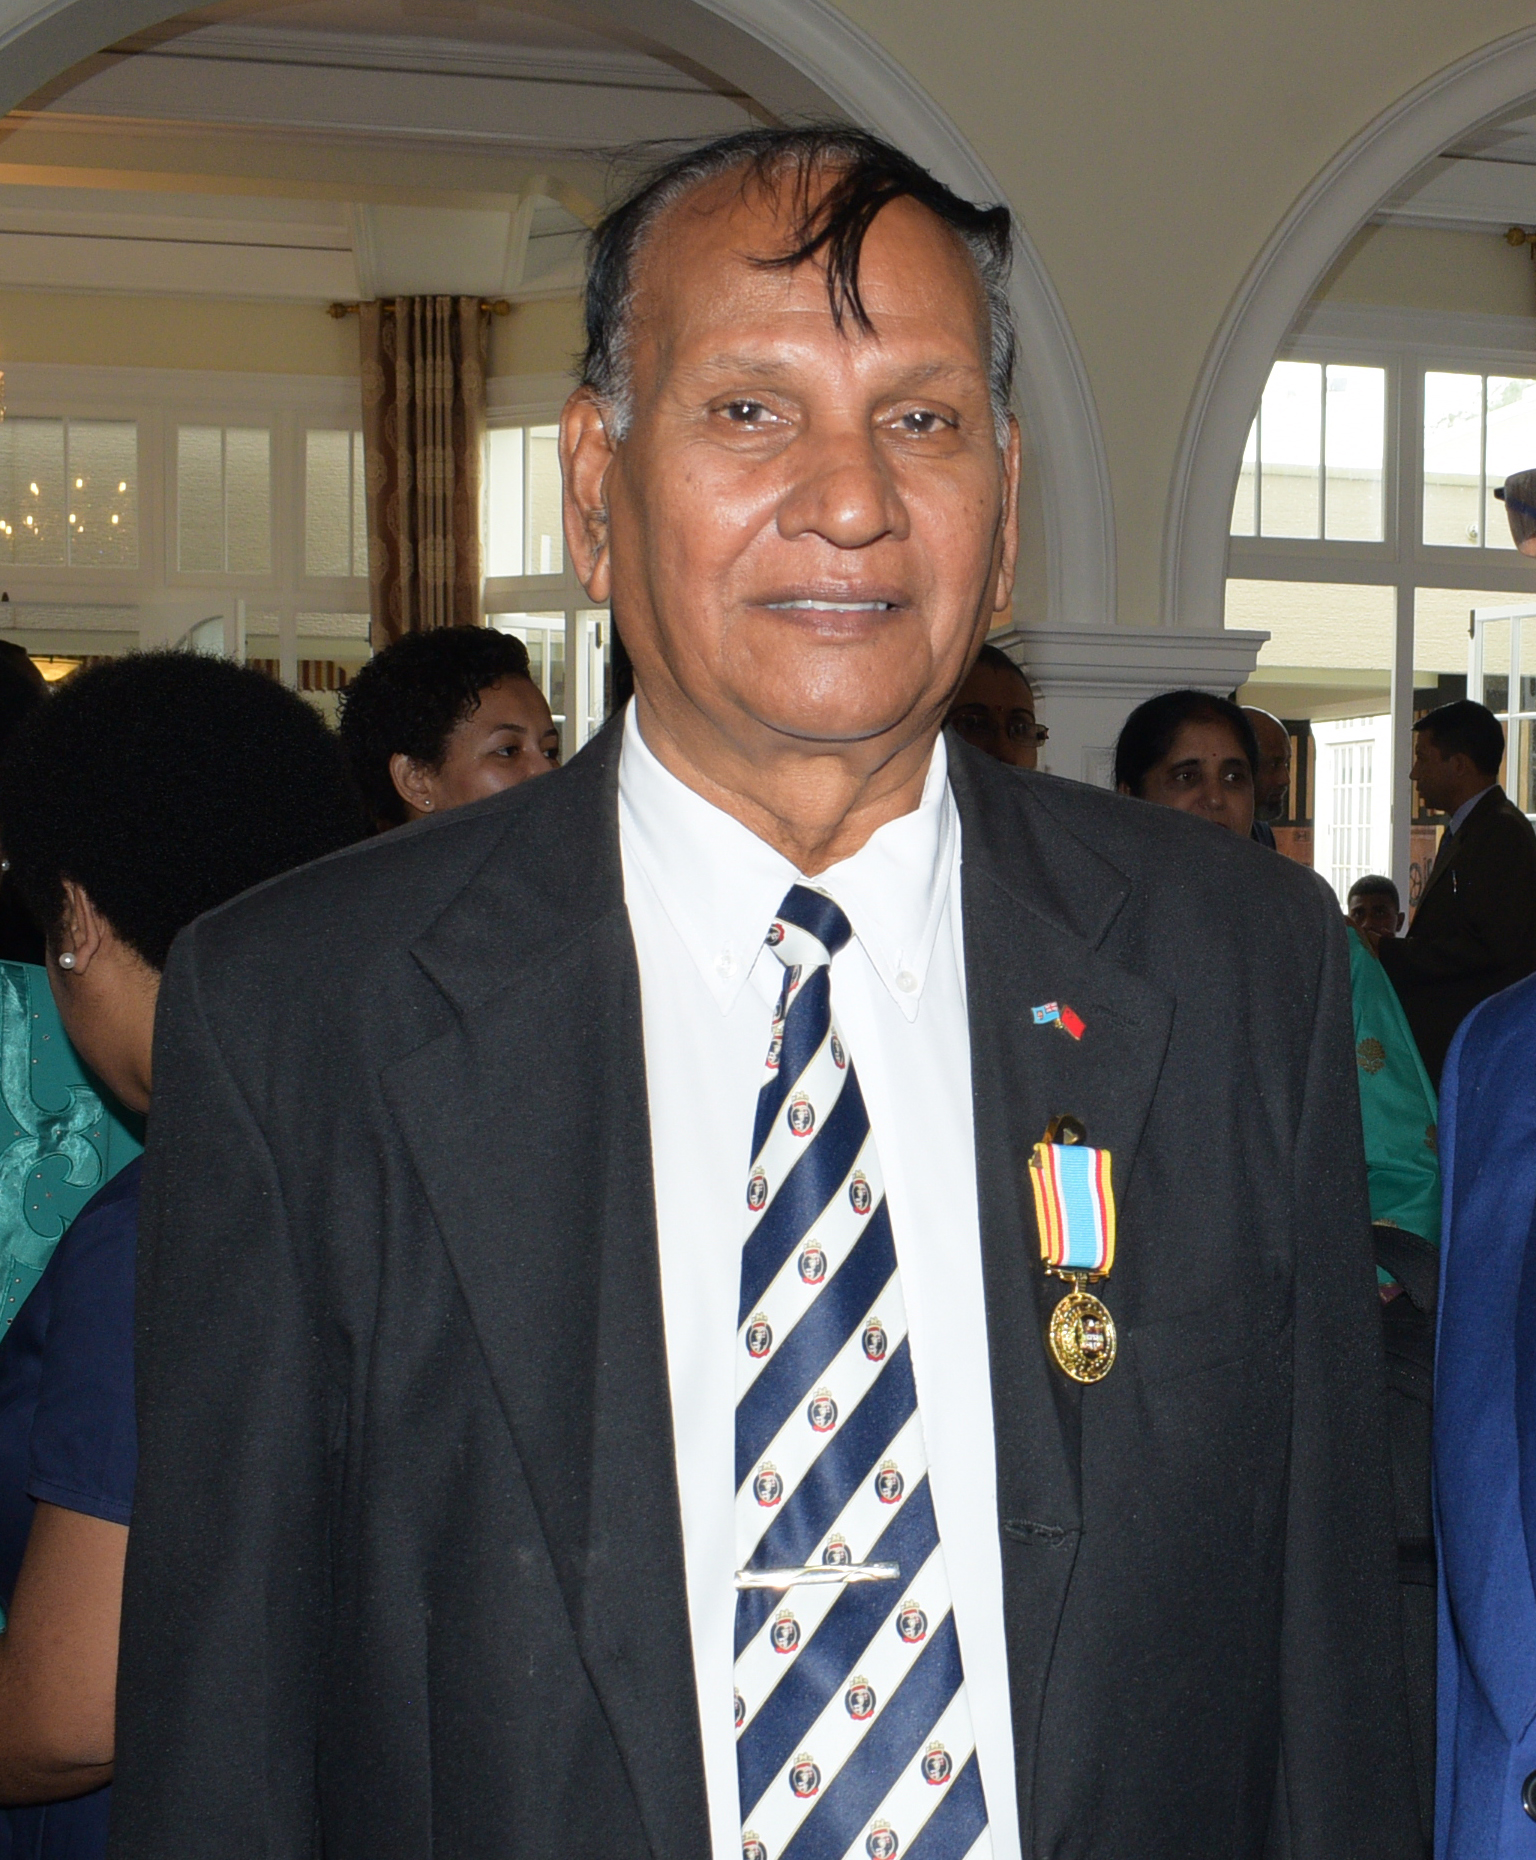 Krishan Vilash following the 50th anniversary of Independence commemorative medal investiture ceremony at State House on October 13, 2020. Photo: Ronald Kumar.